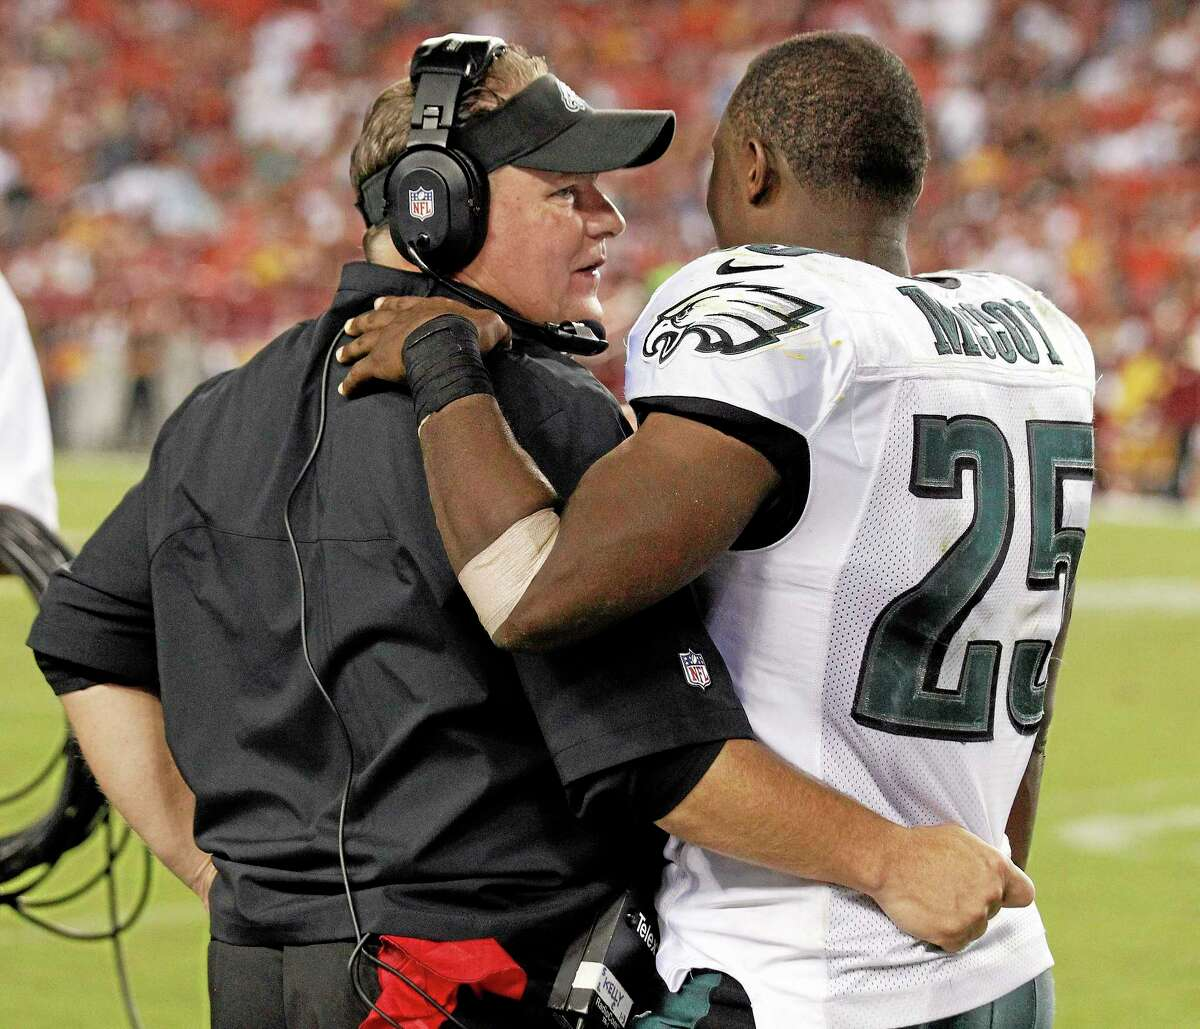 Philadelphia Eagles head coach Chip Kelly talks with running back LeSean McCoy on the sidelines during the second half of Monday's win over the Washington Redskins in Landover, Md.